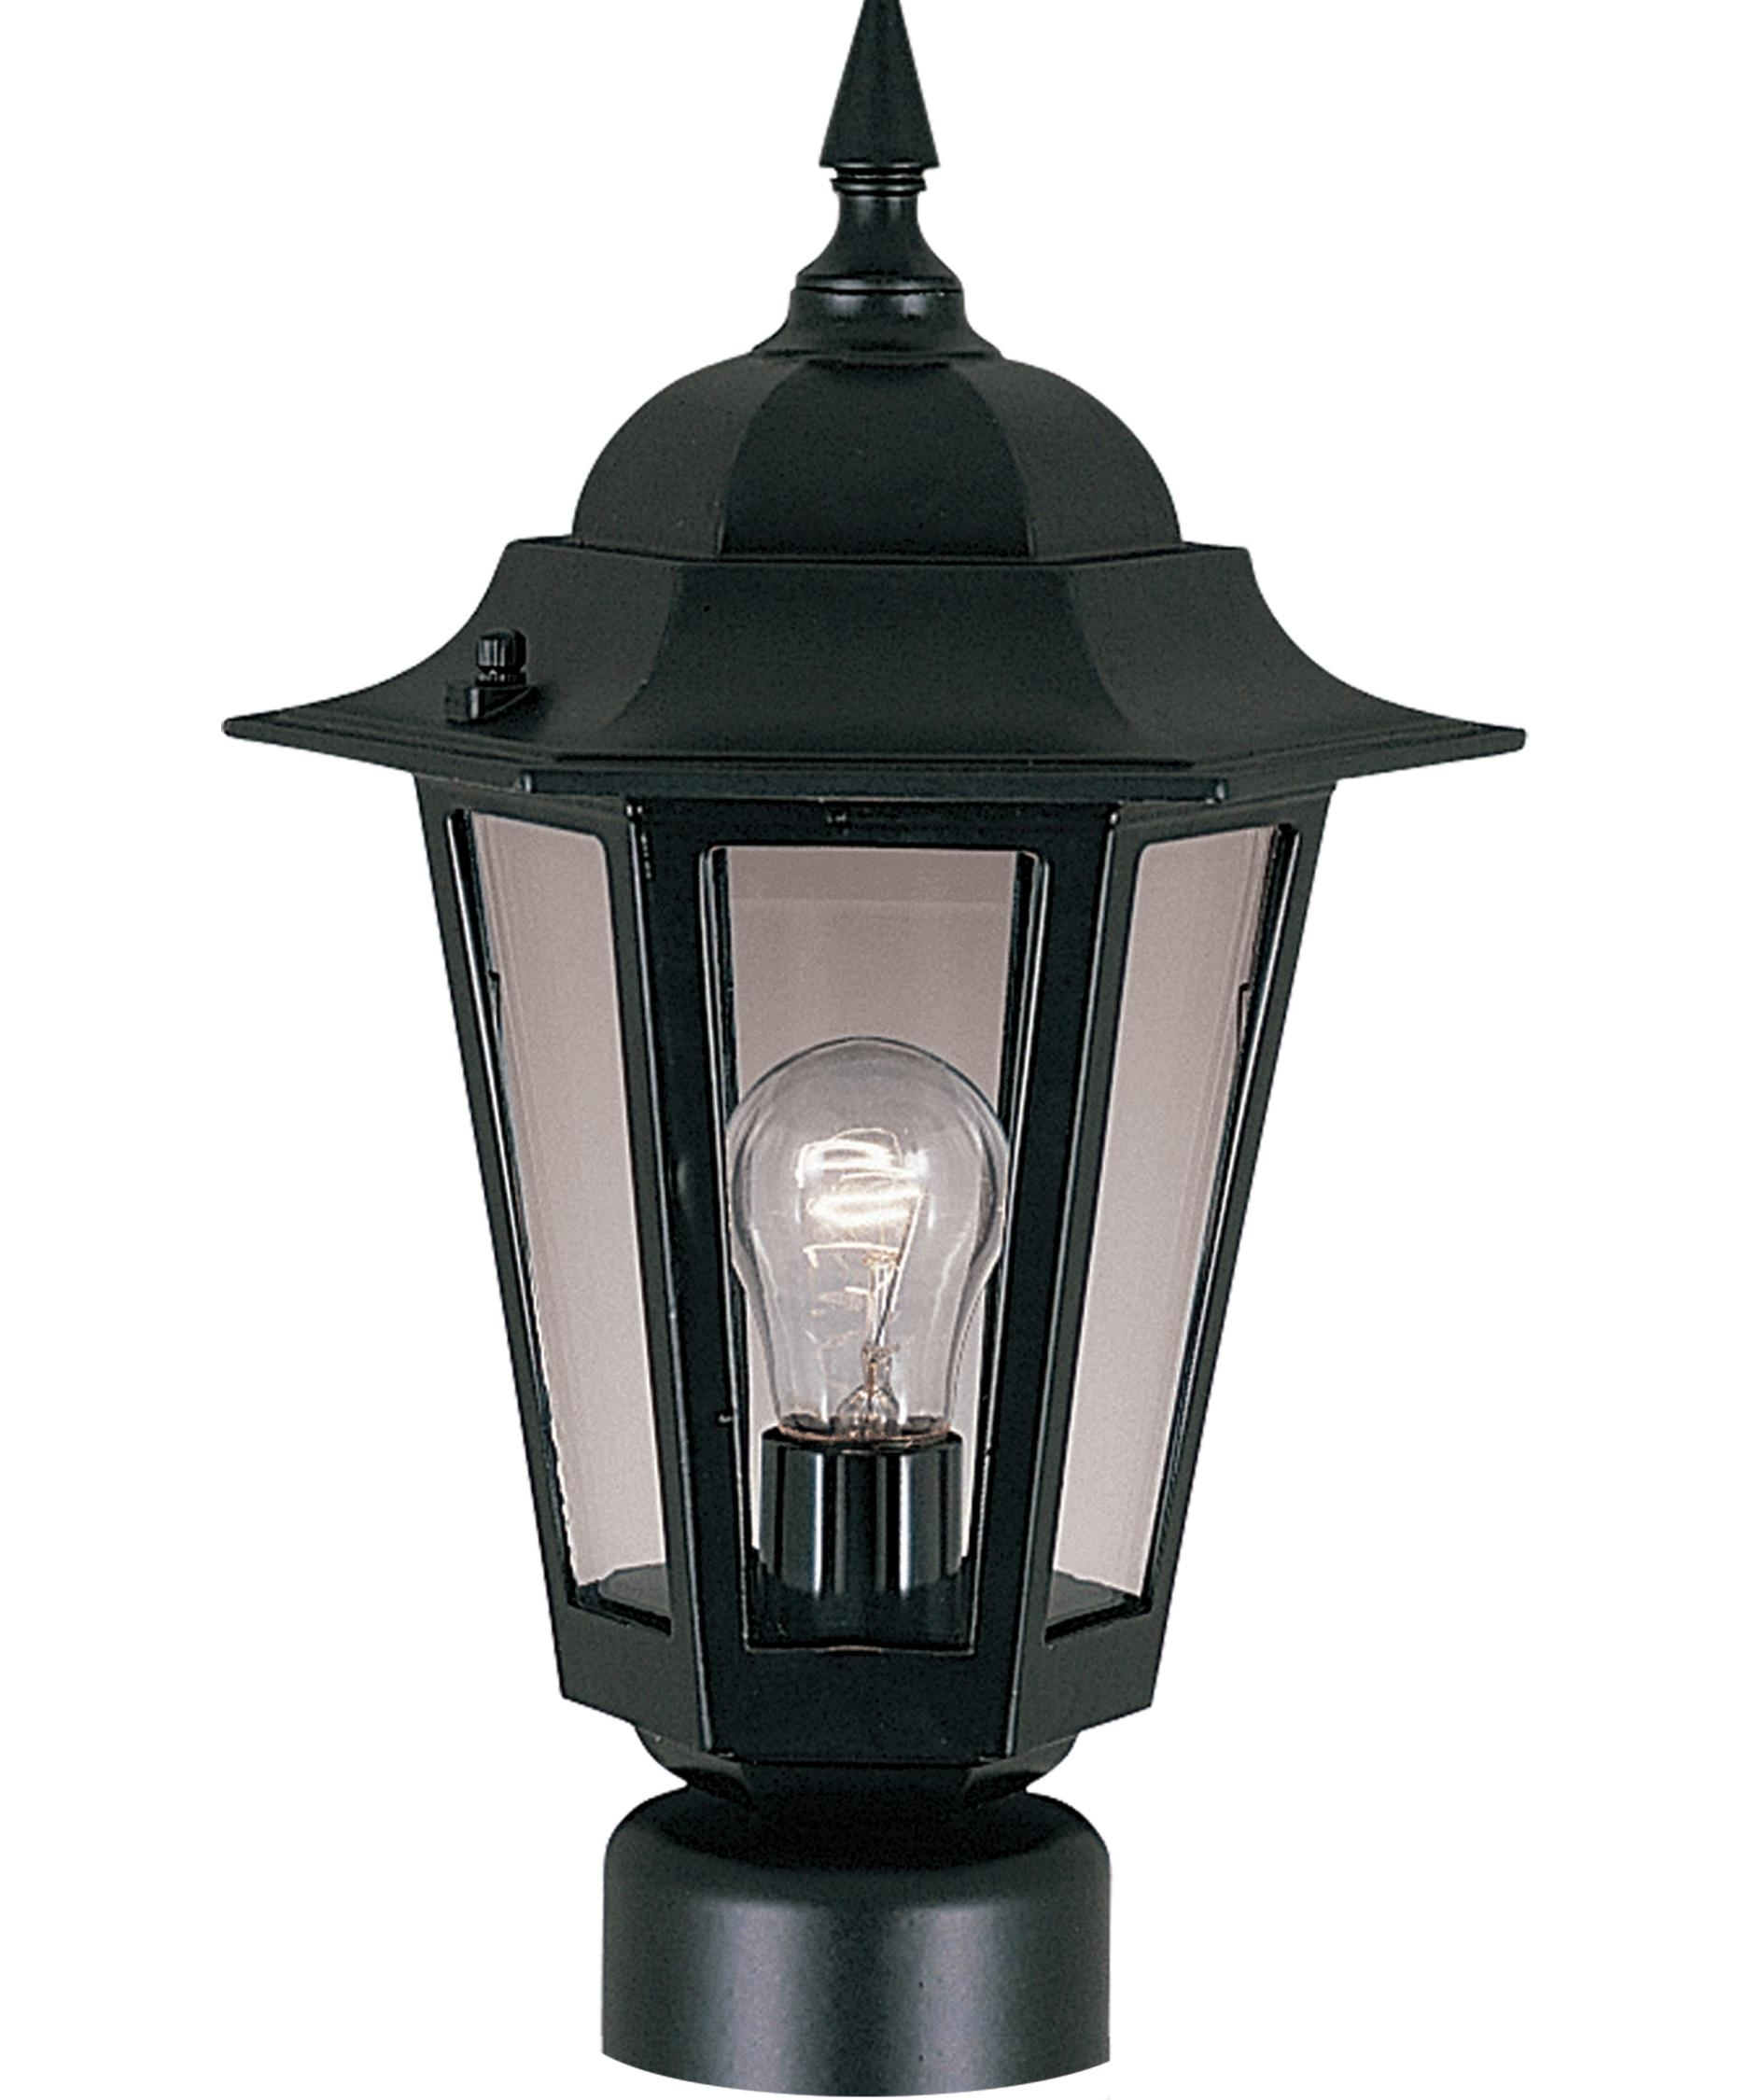 Outdoor Post Lamps & Post Lighting: Led, Incandescent | Capitol throughout Outdoor Post Lanterns (Image 10 of 20)